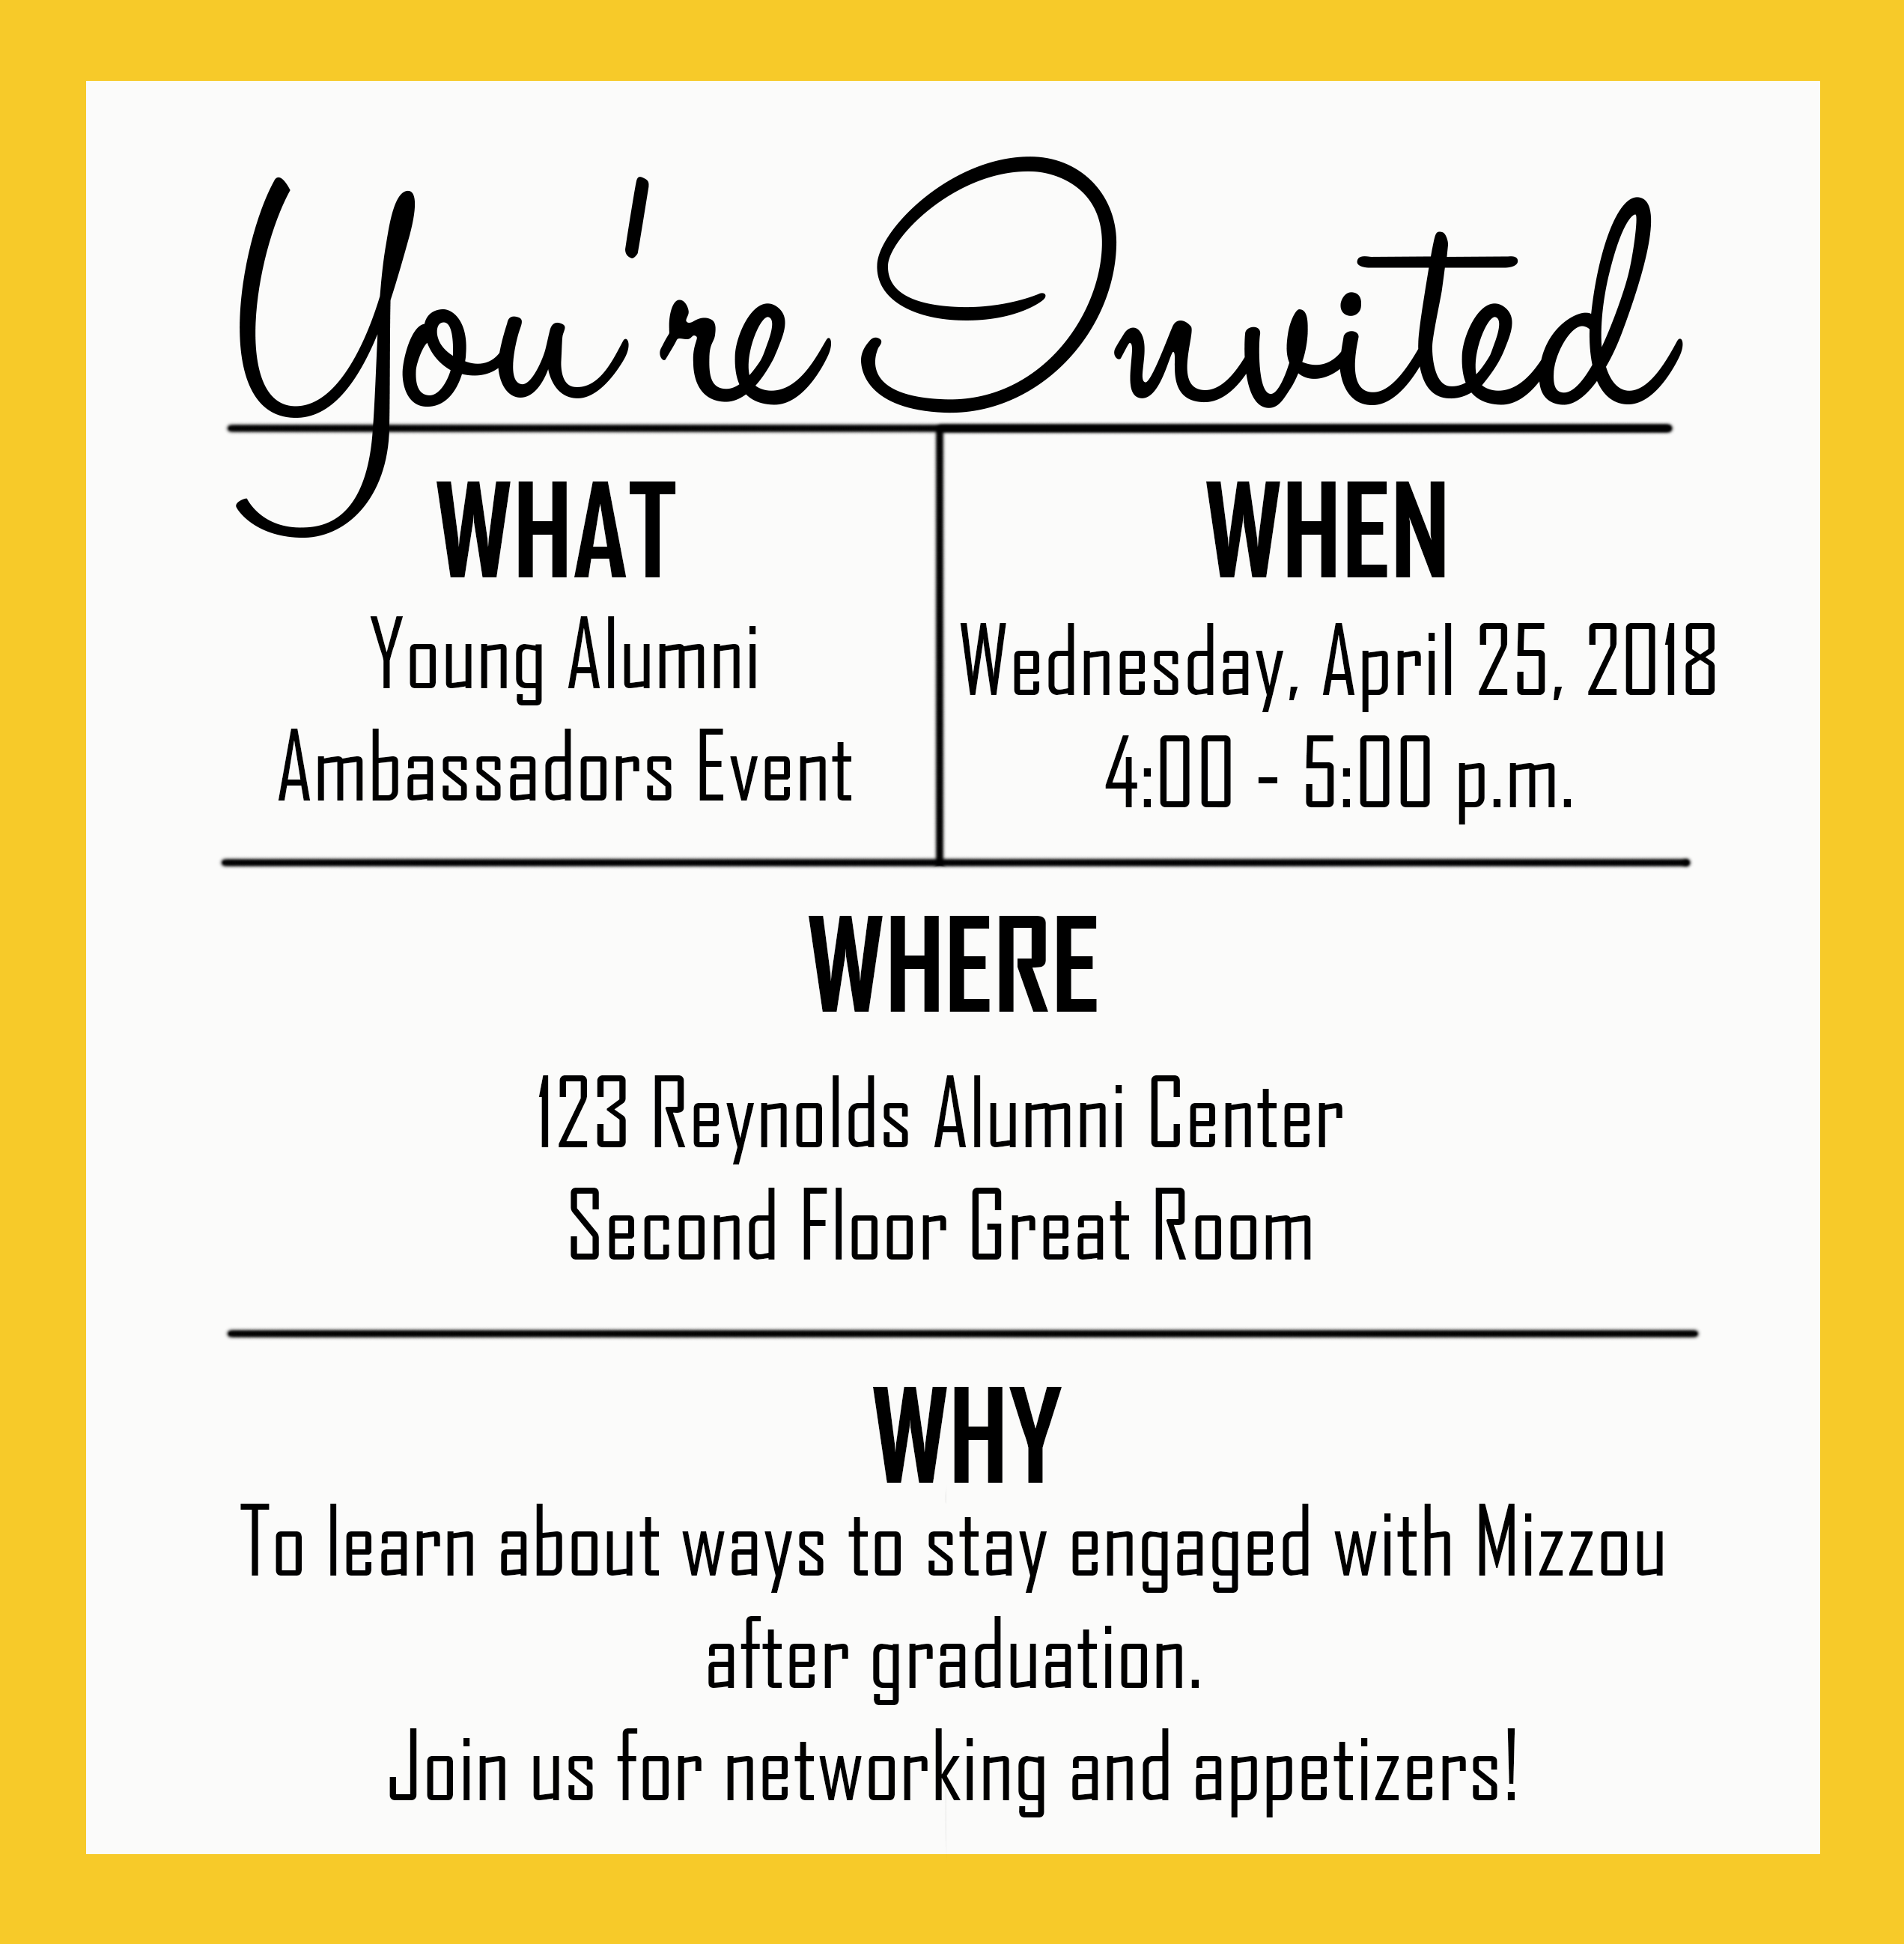 Mizzou Alumni Association Young Alumni Ambassadors Event